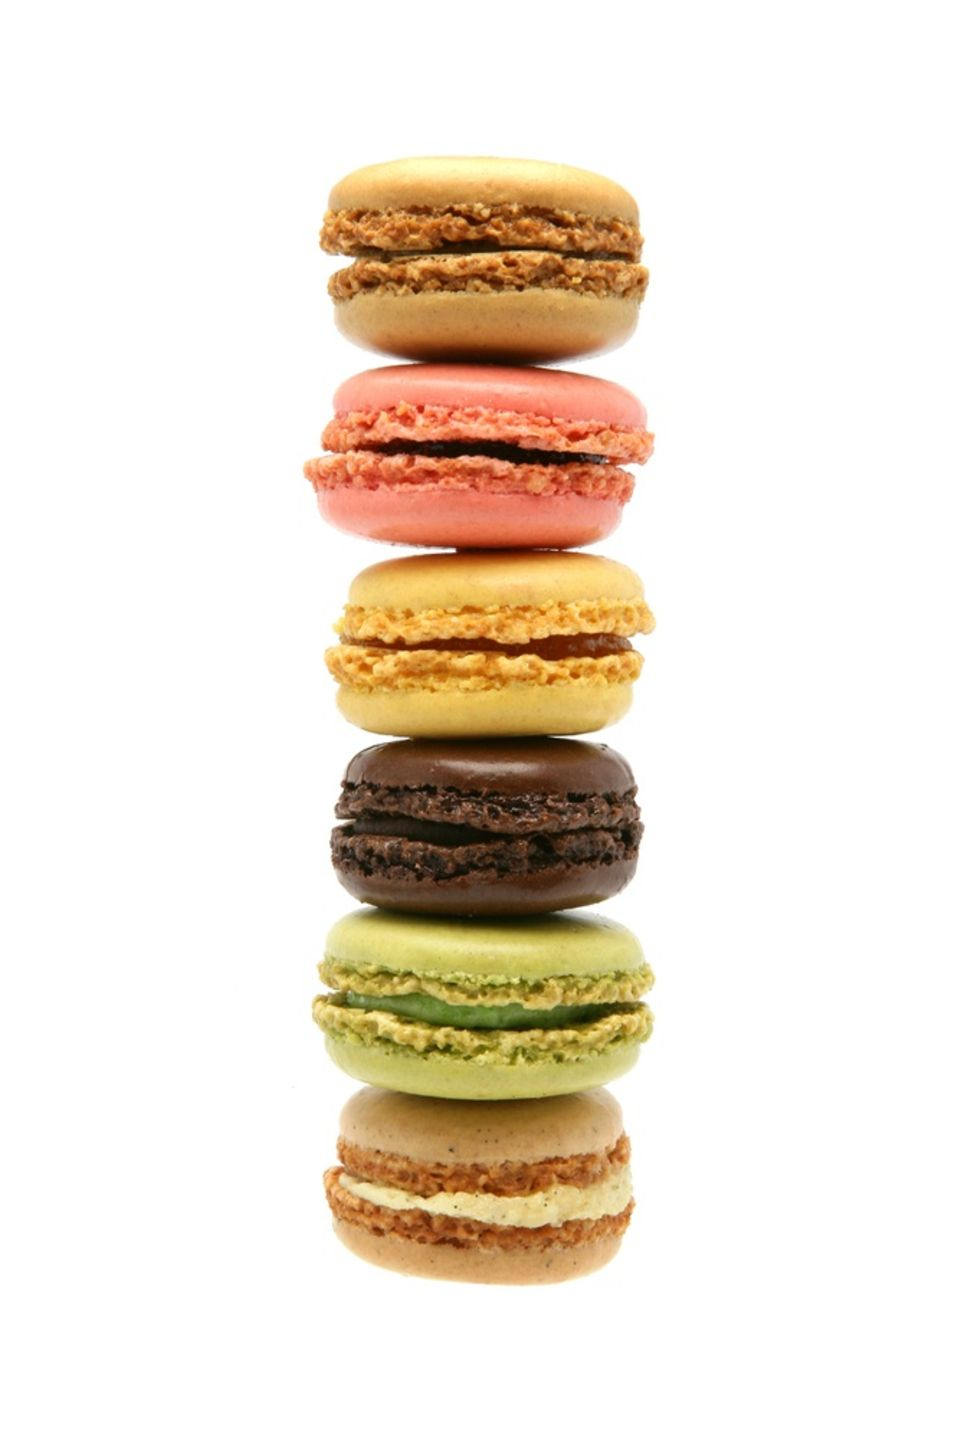 Stapelweise Macarons